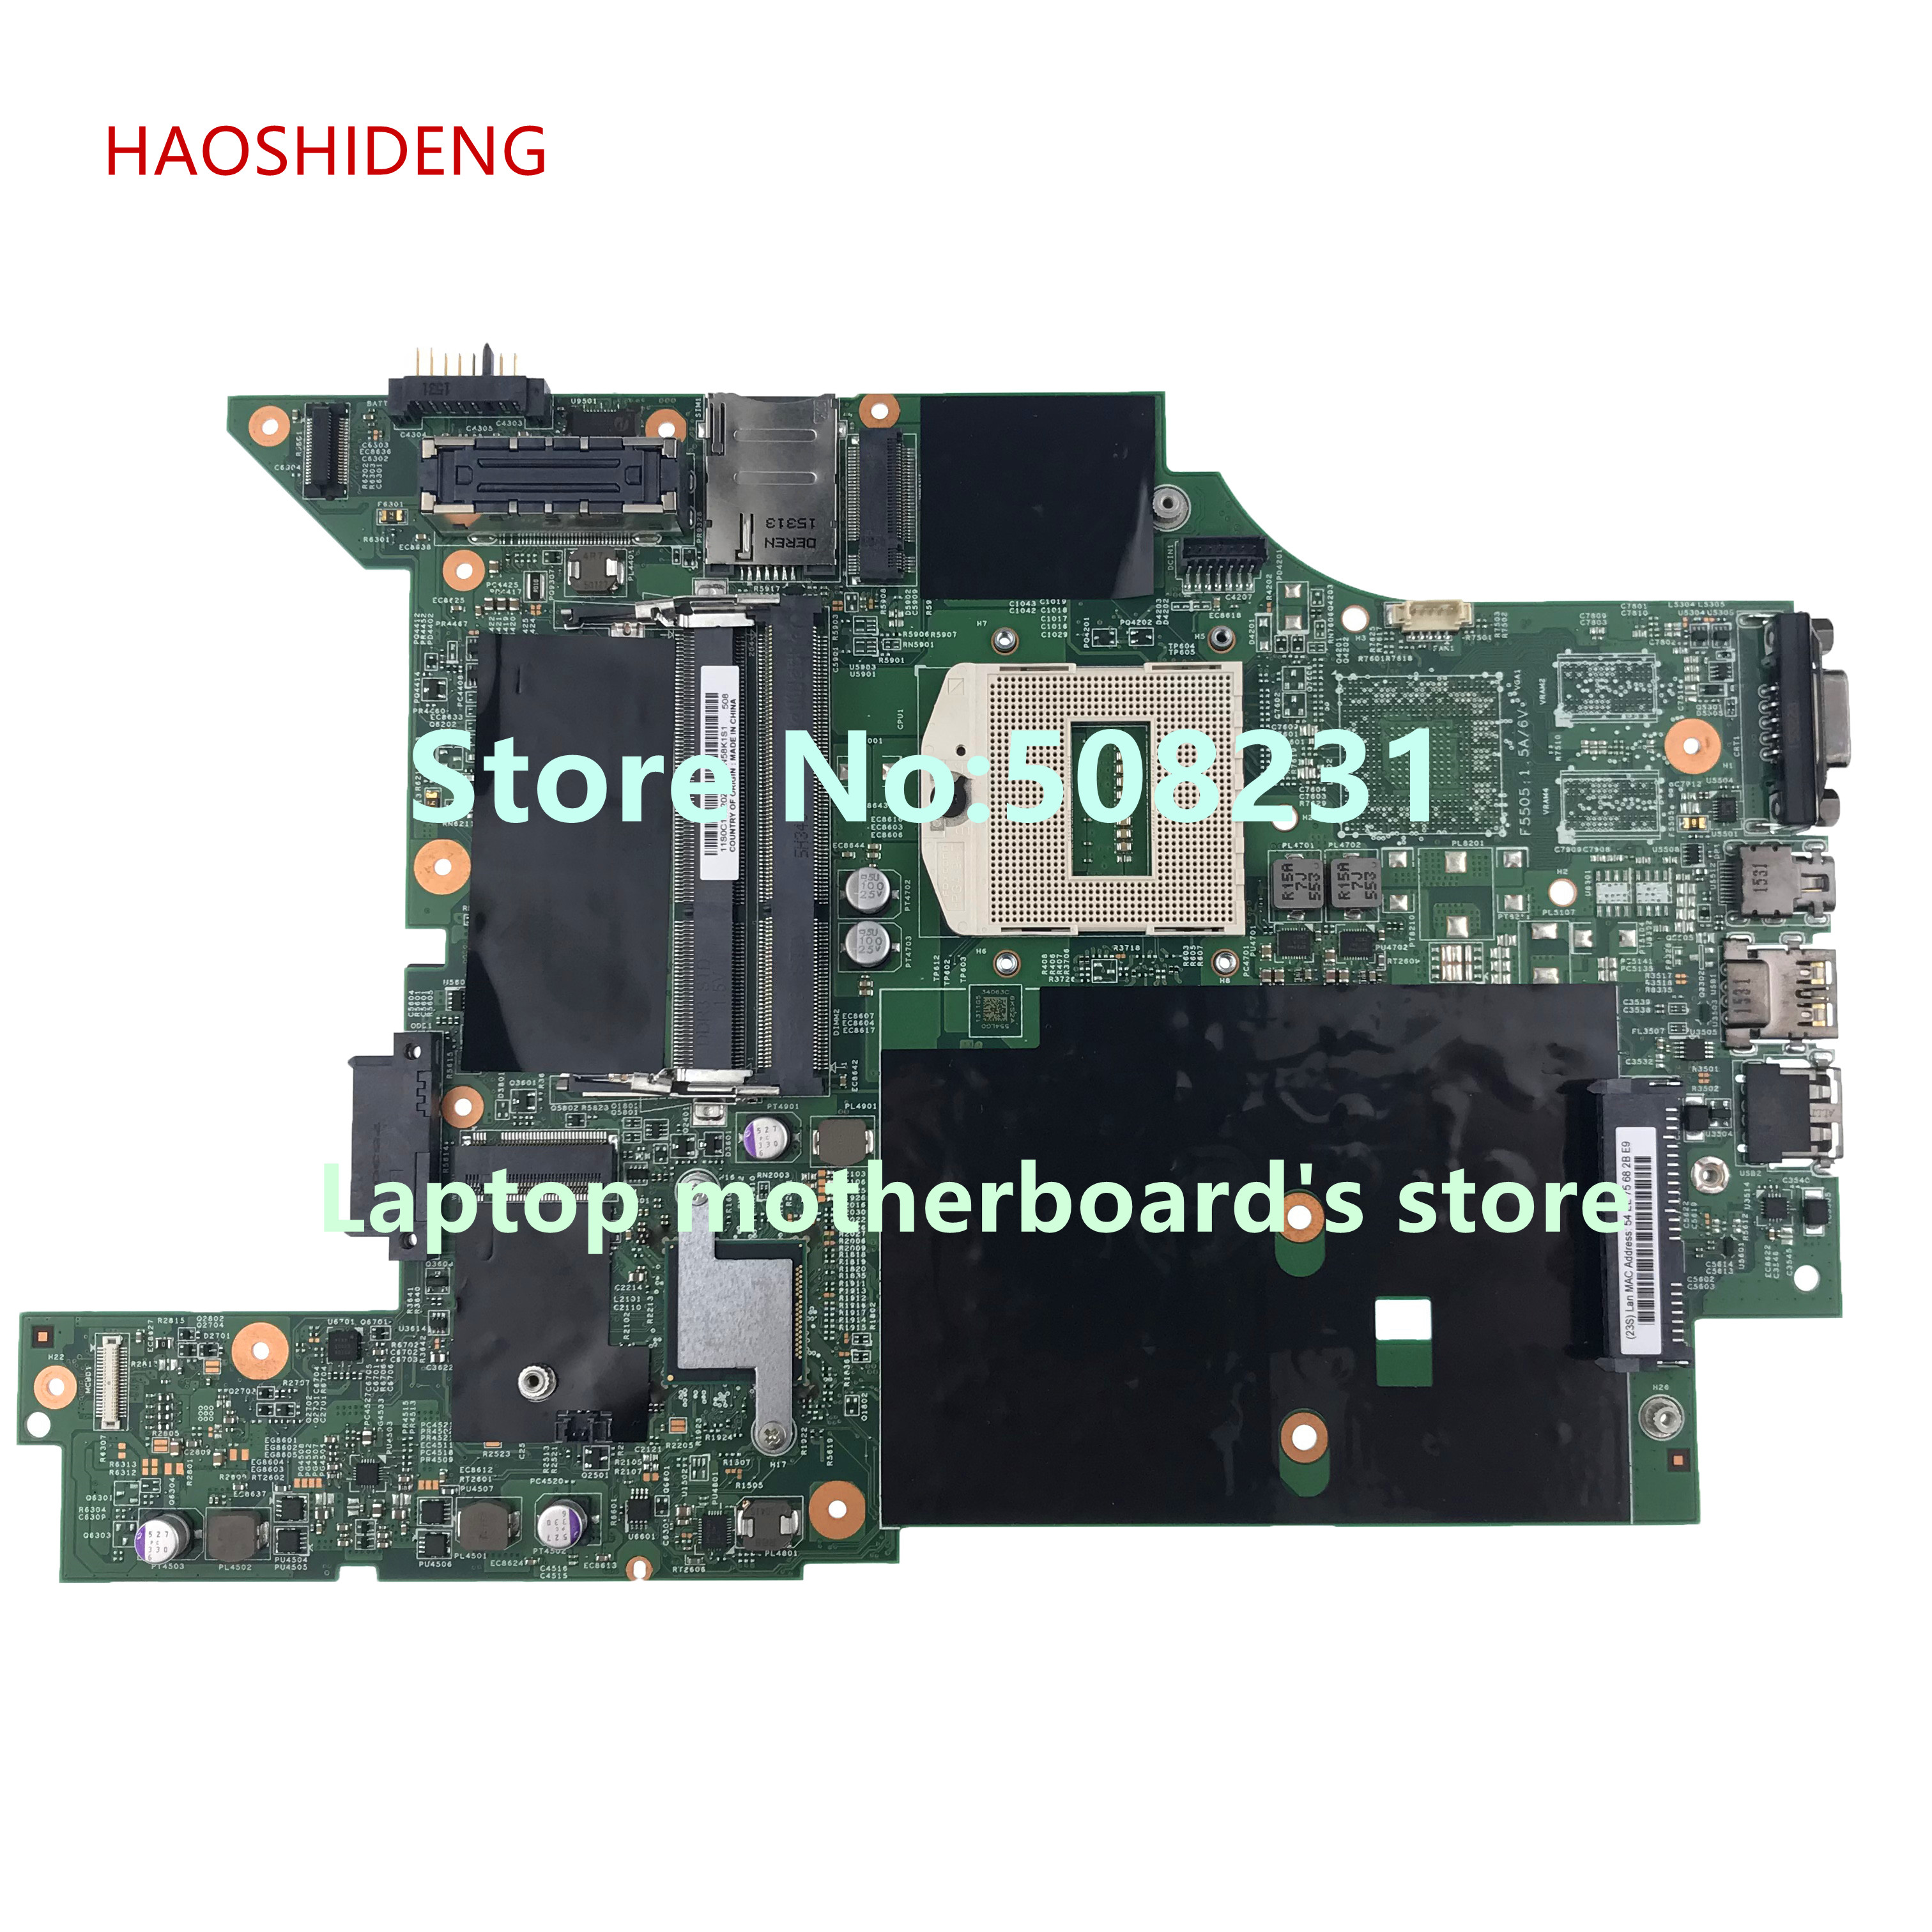 HAOSHIDENG mainboard for lenovo thinkpad L440 Laptop Motherboard All functions fully Tested for hp 605321 001 laptop motherboard mainboard fully tested all functions work good